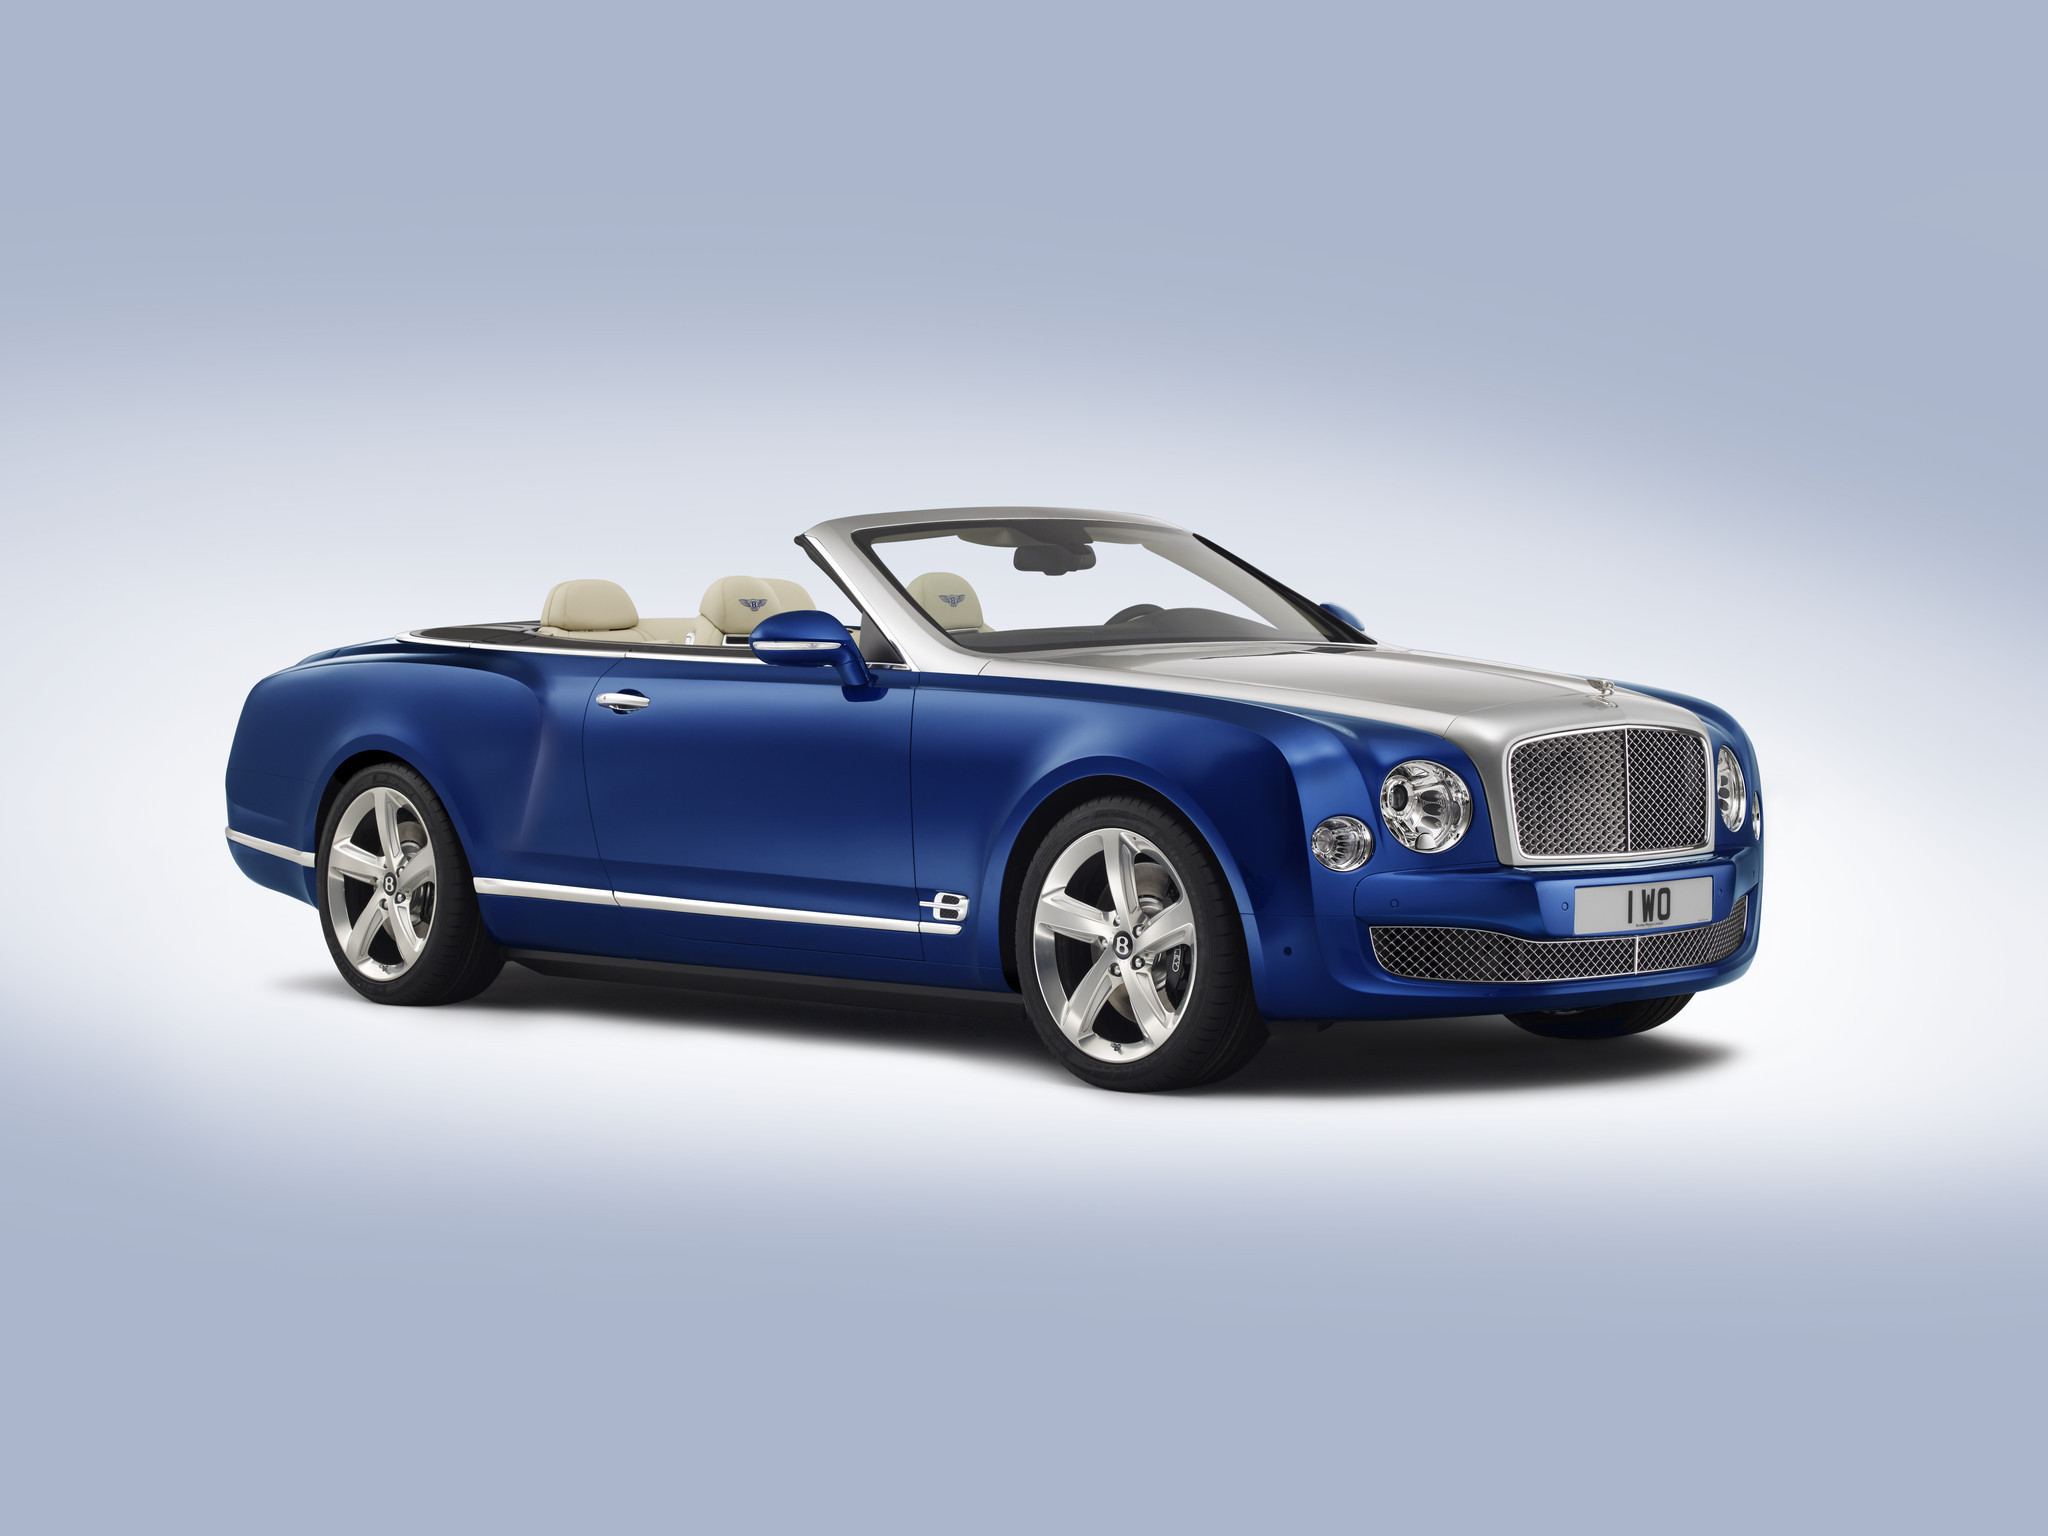 Bentley Grand Convertible. Photo credits: http://www.latimes.com/business/autos/la-fi-bentley-grand-convertible-concept-la-auto-show-20141117-story.html